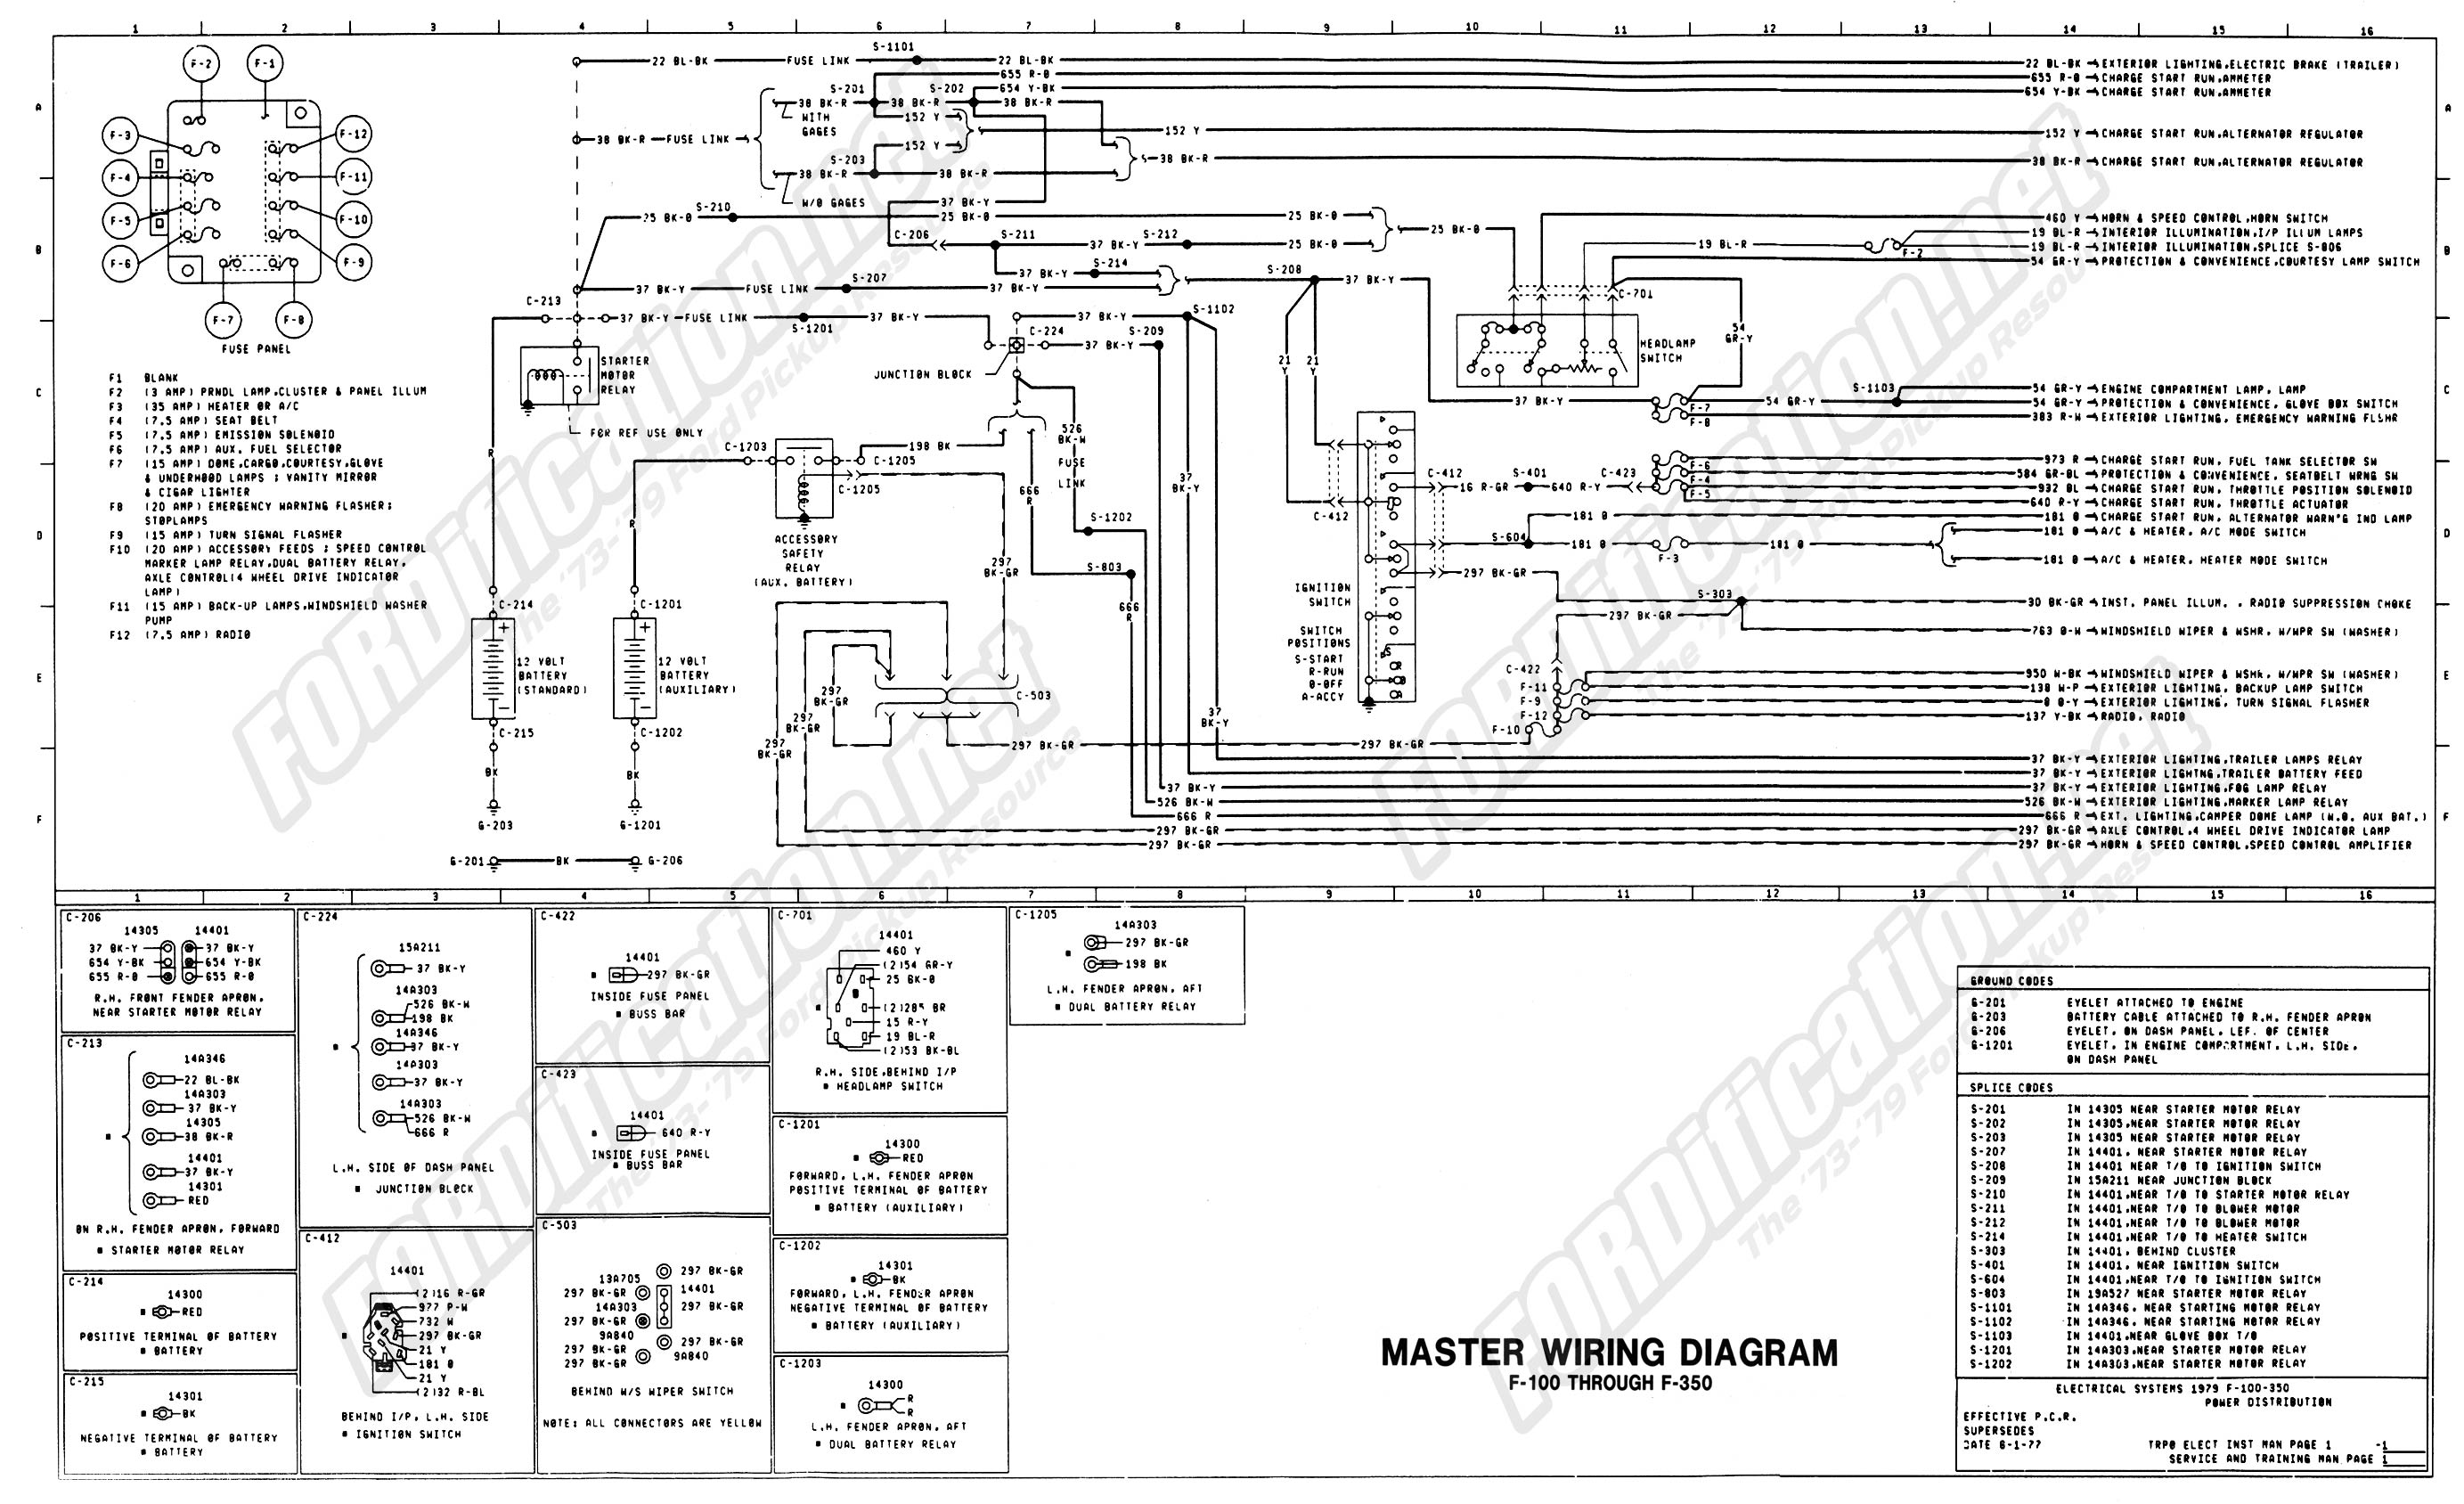 Ford F750 Brake Light Wiring Diagram Stop 1964 F100 Tail Free Picture Data Wiringfree Auto